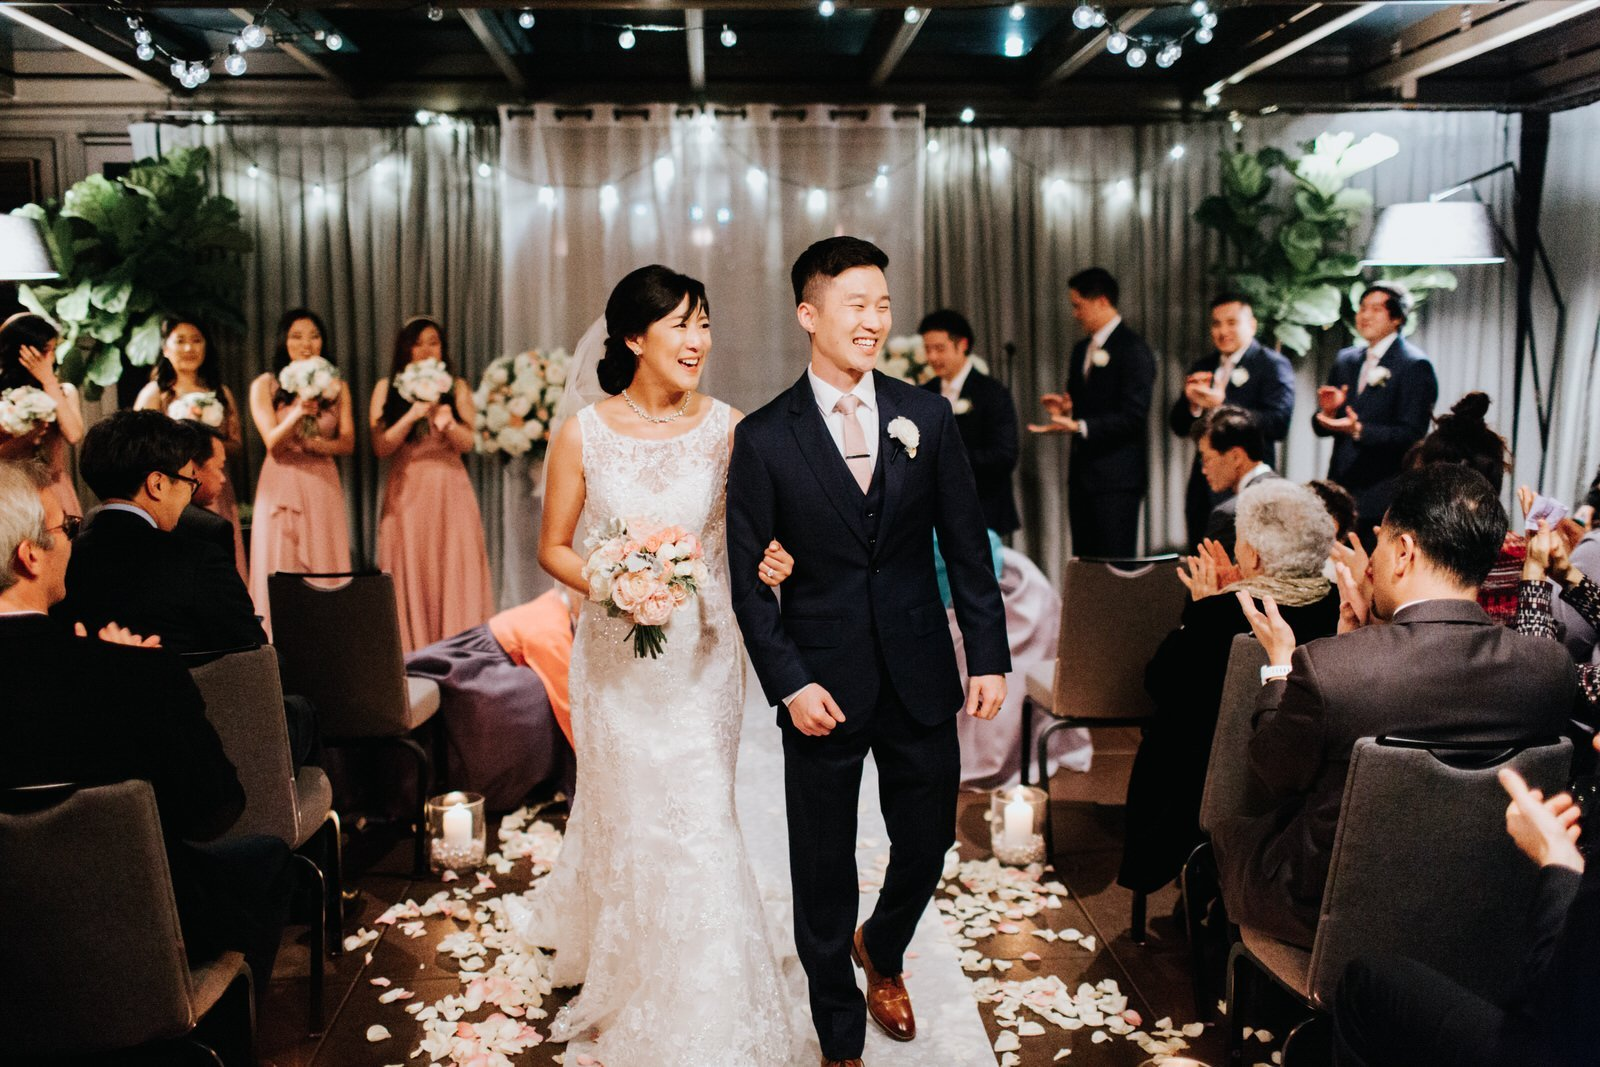 The couple walks down the isle during their night ceremony at hotel 1000